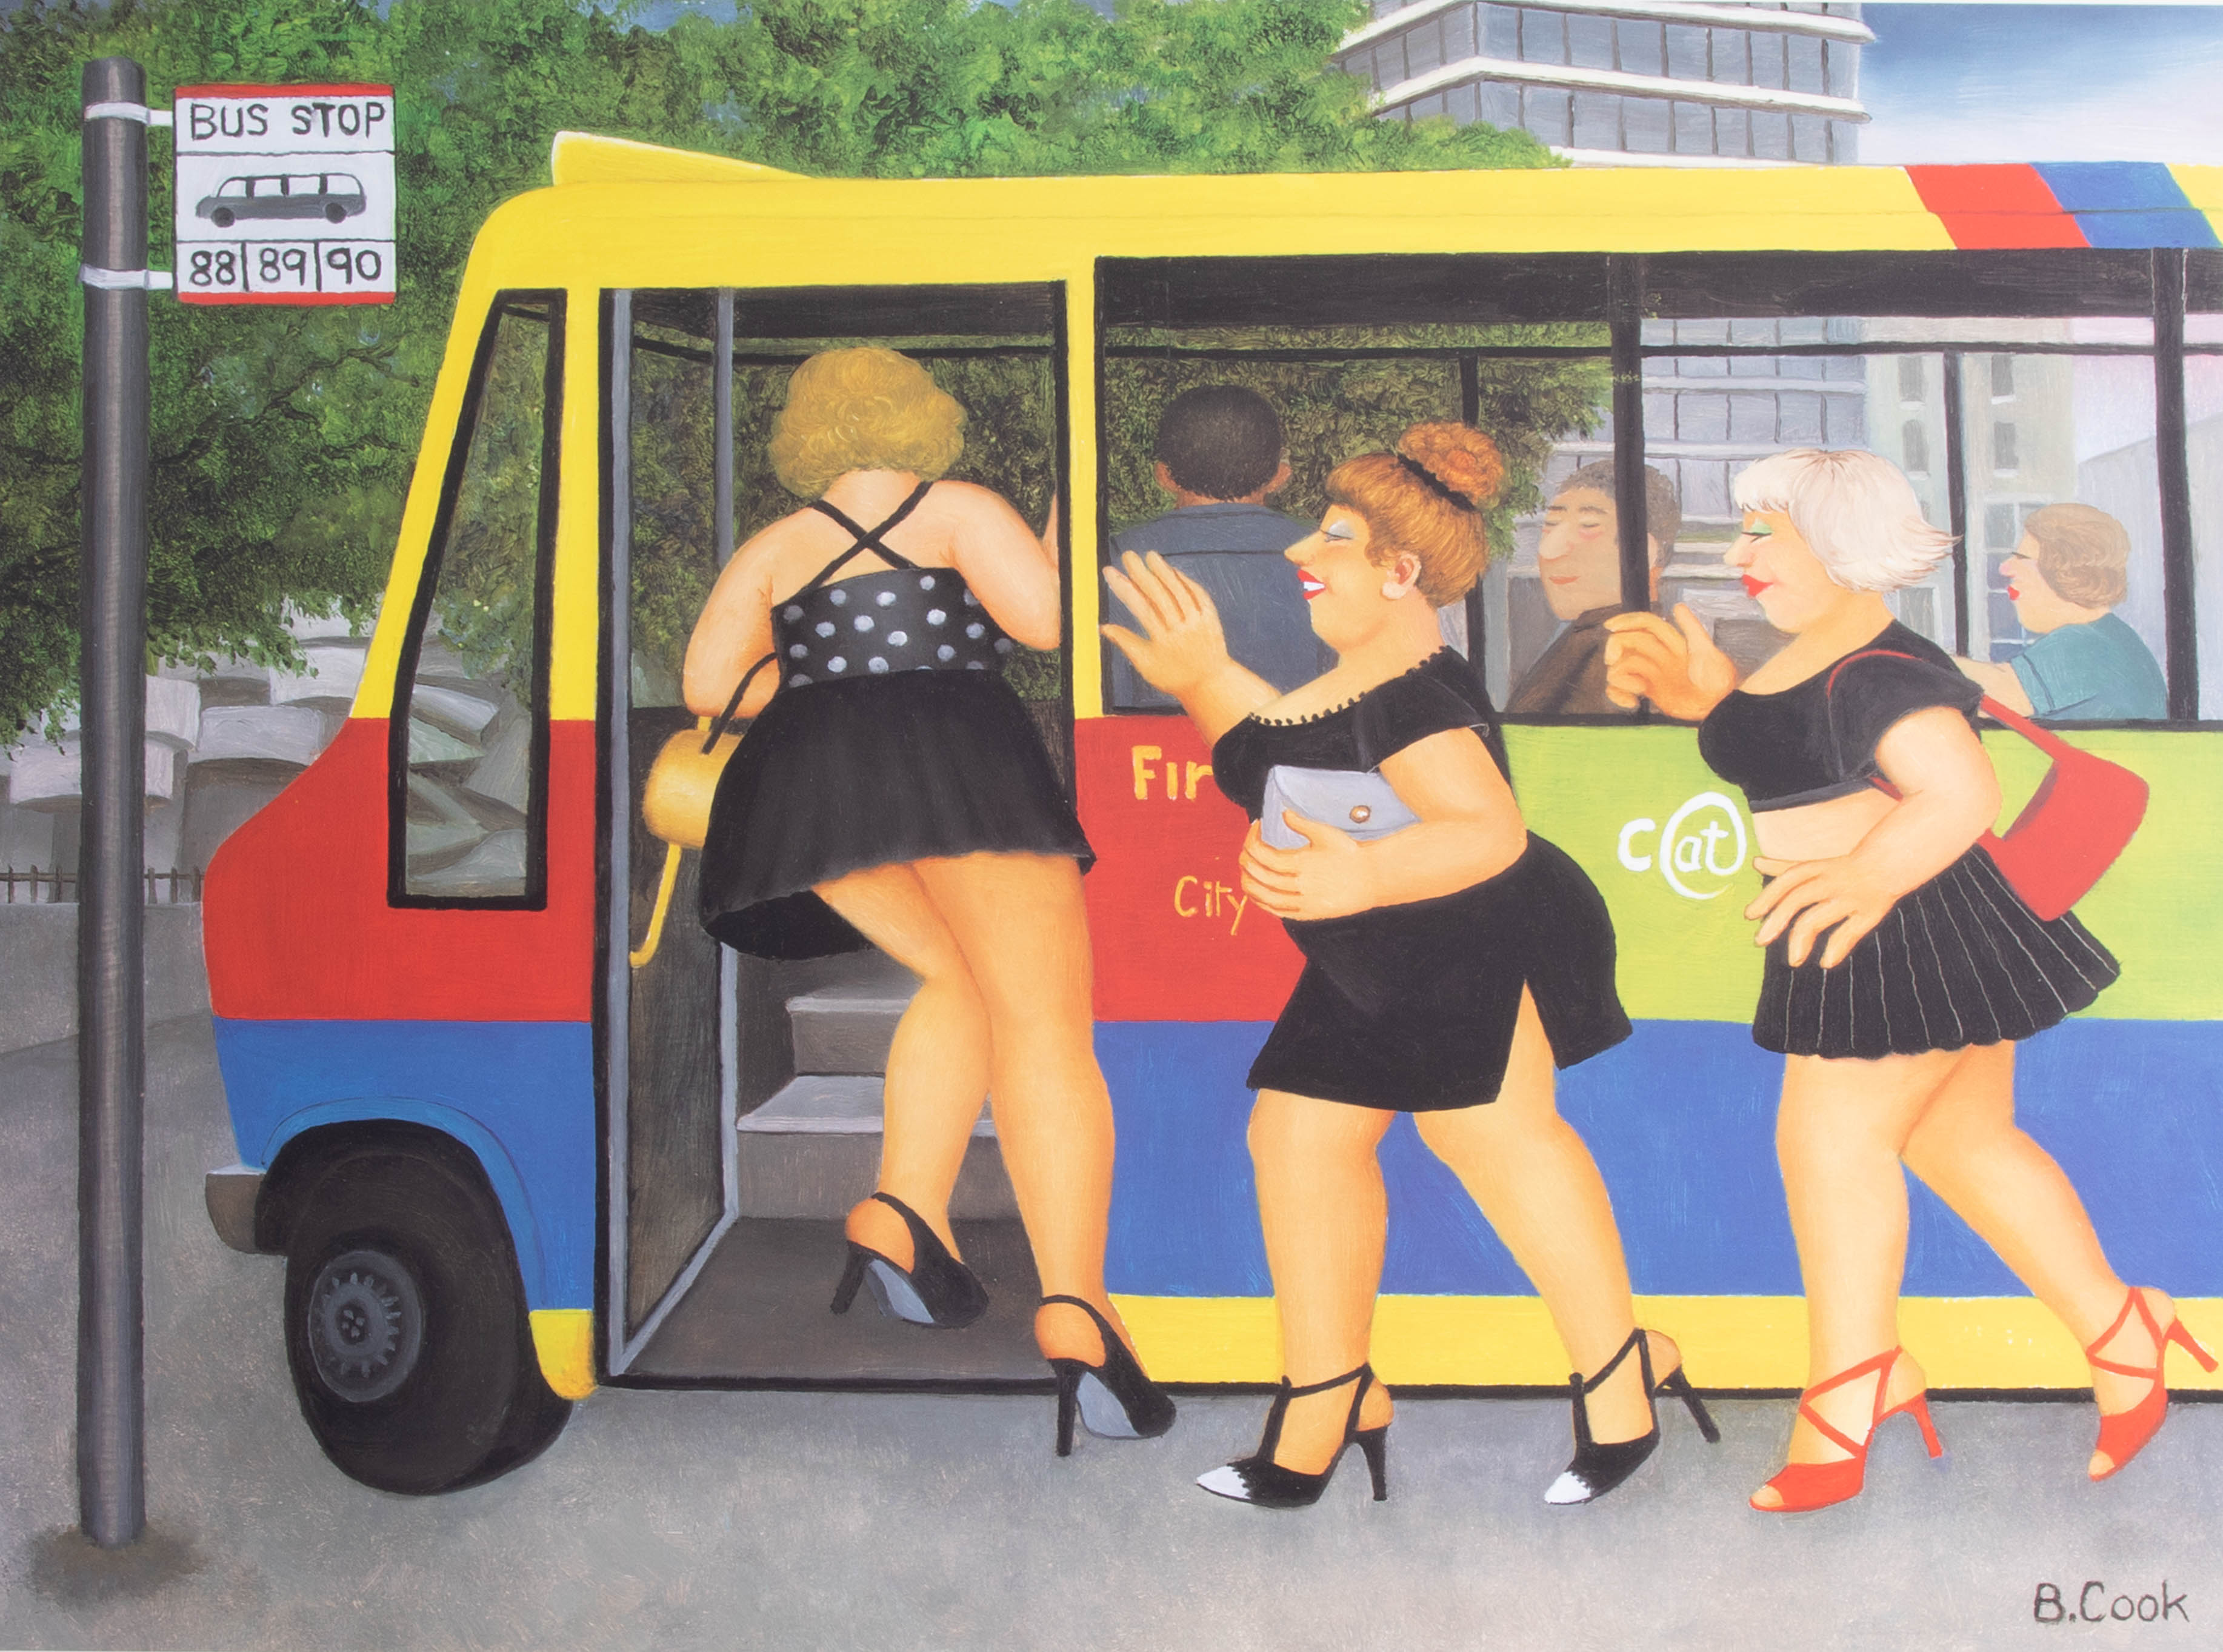 Lot 025 - Beryl Cook (1926-2008), 'Bus Stop', edition of 650, published by Alexander Gallery, 58cm x 67cm,